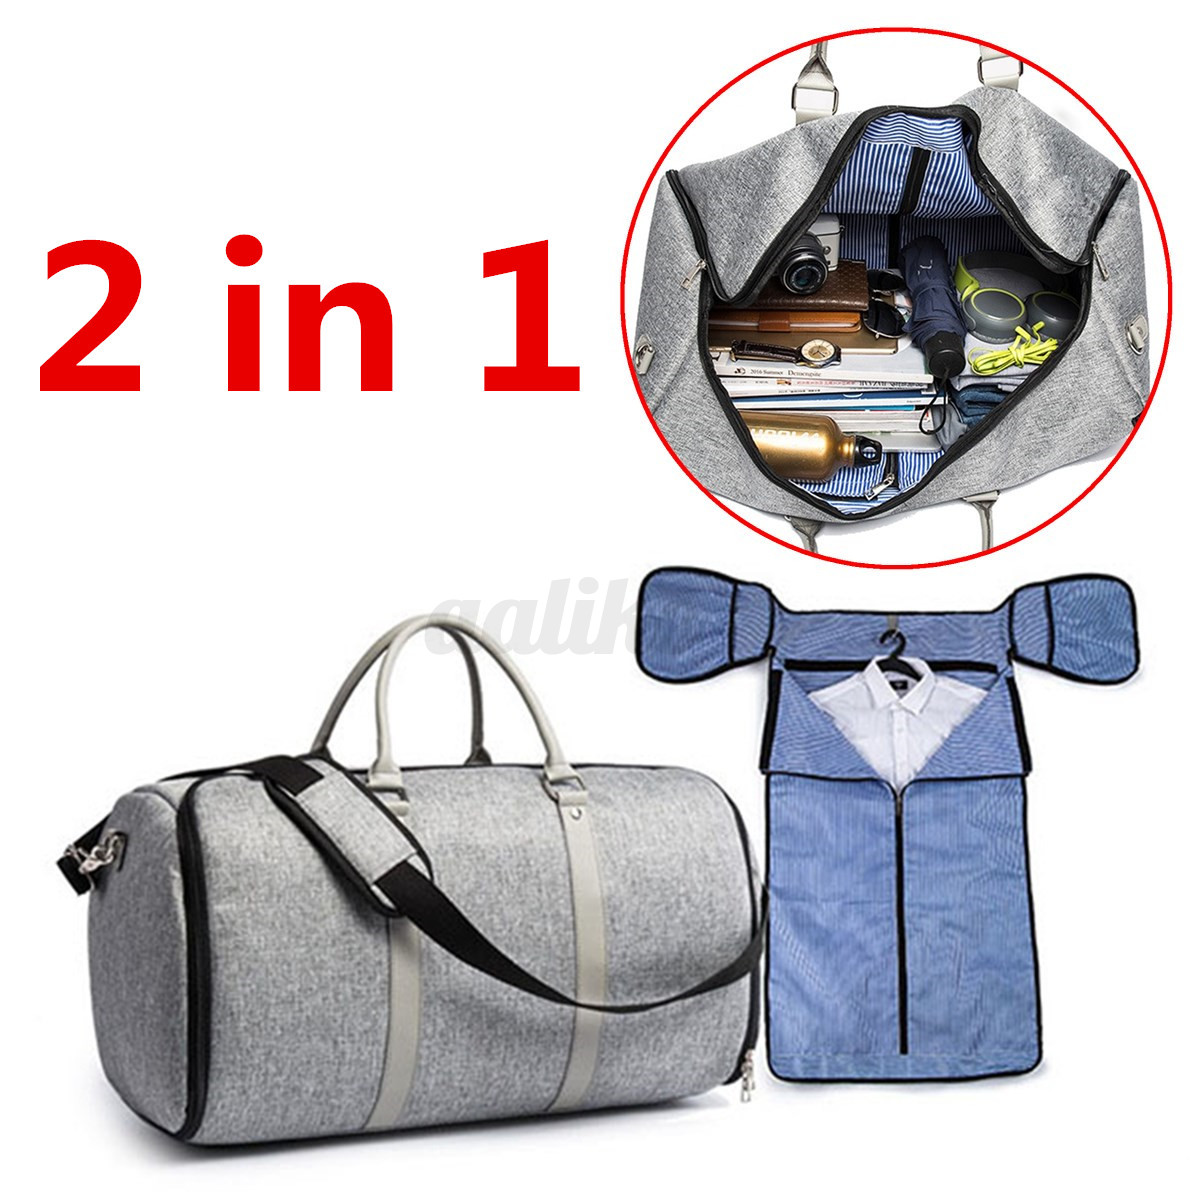 1070d49f8492 2 in 1 Carry-on Garment Business Suit Flight Travel Duffel Gym Sport ...